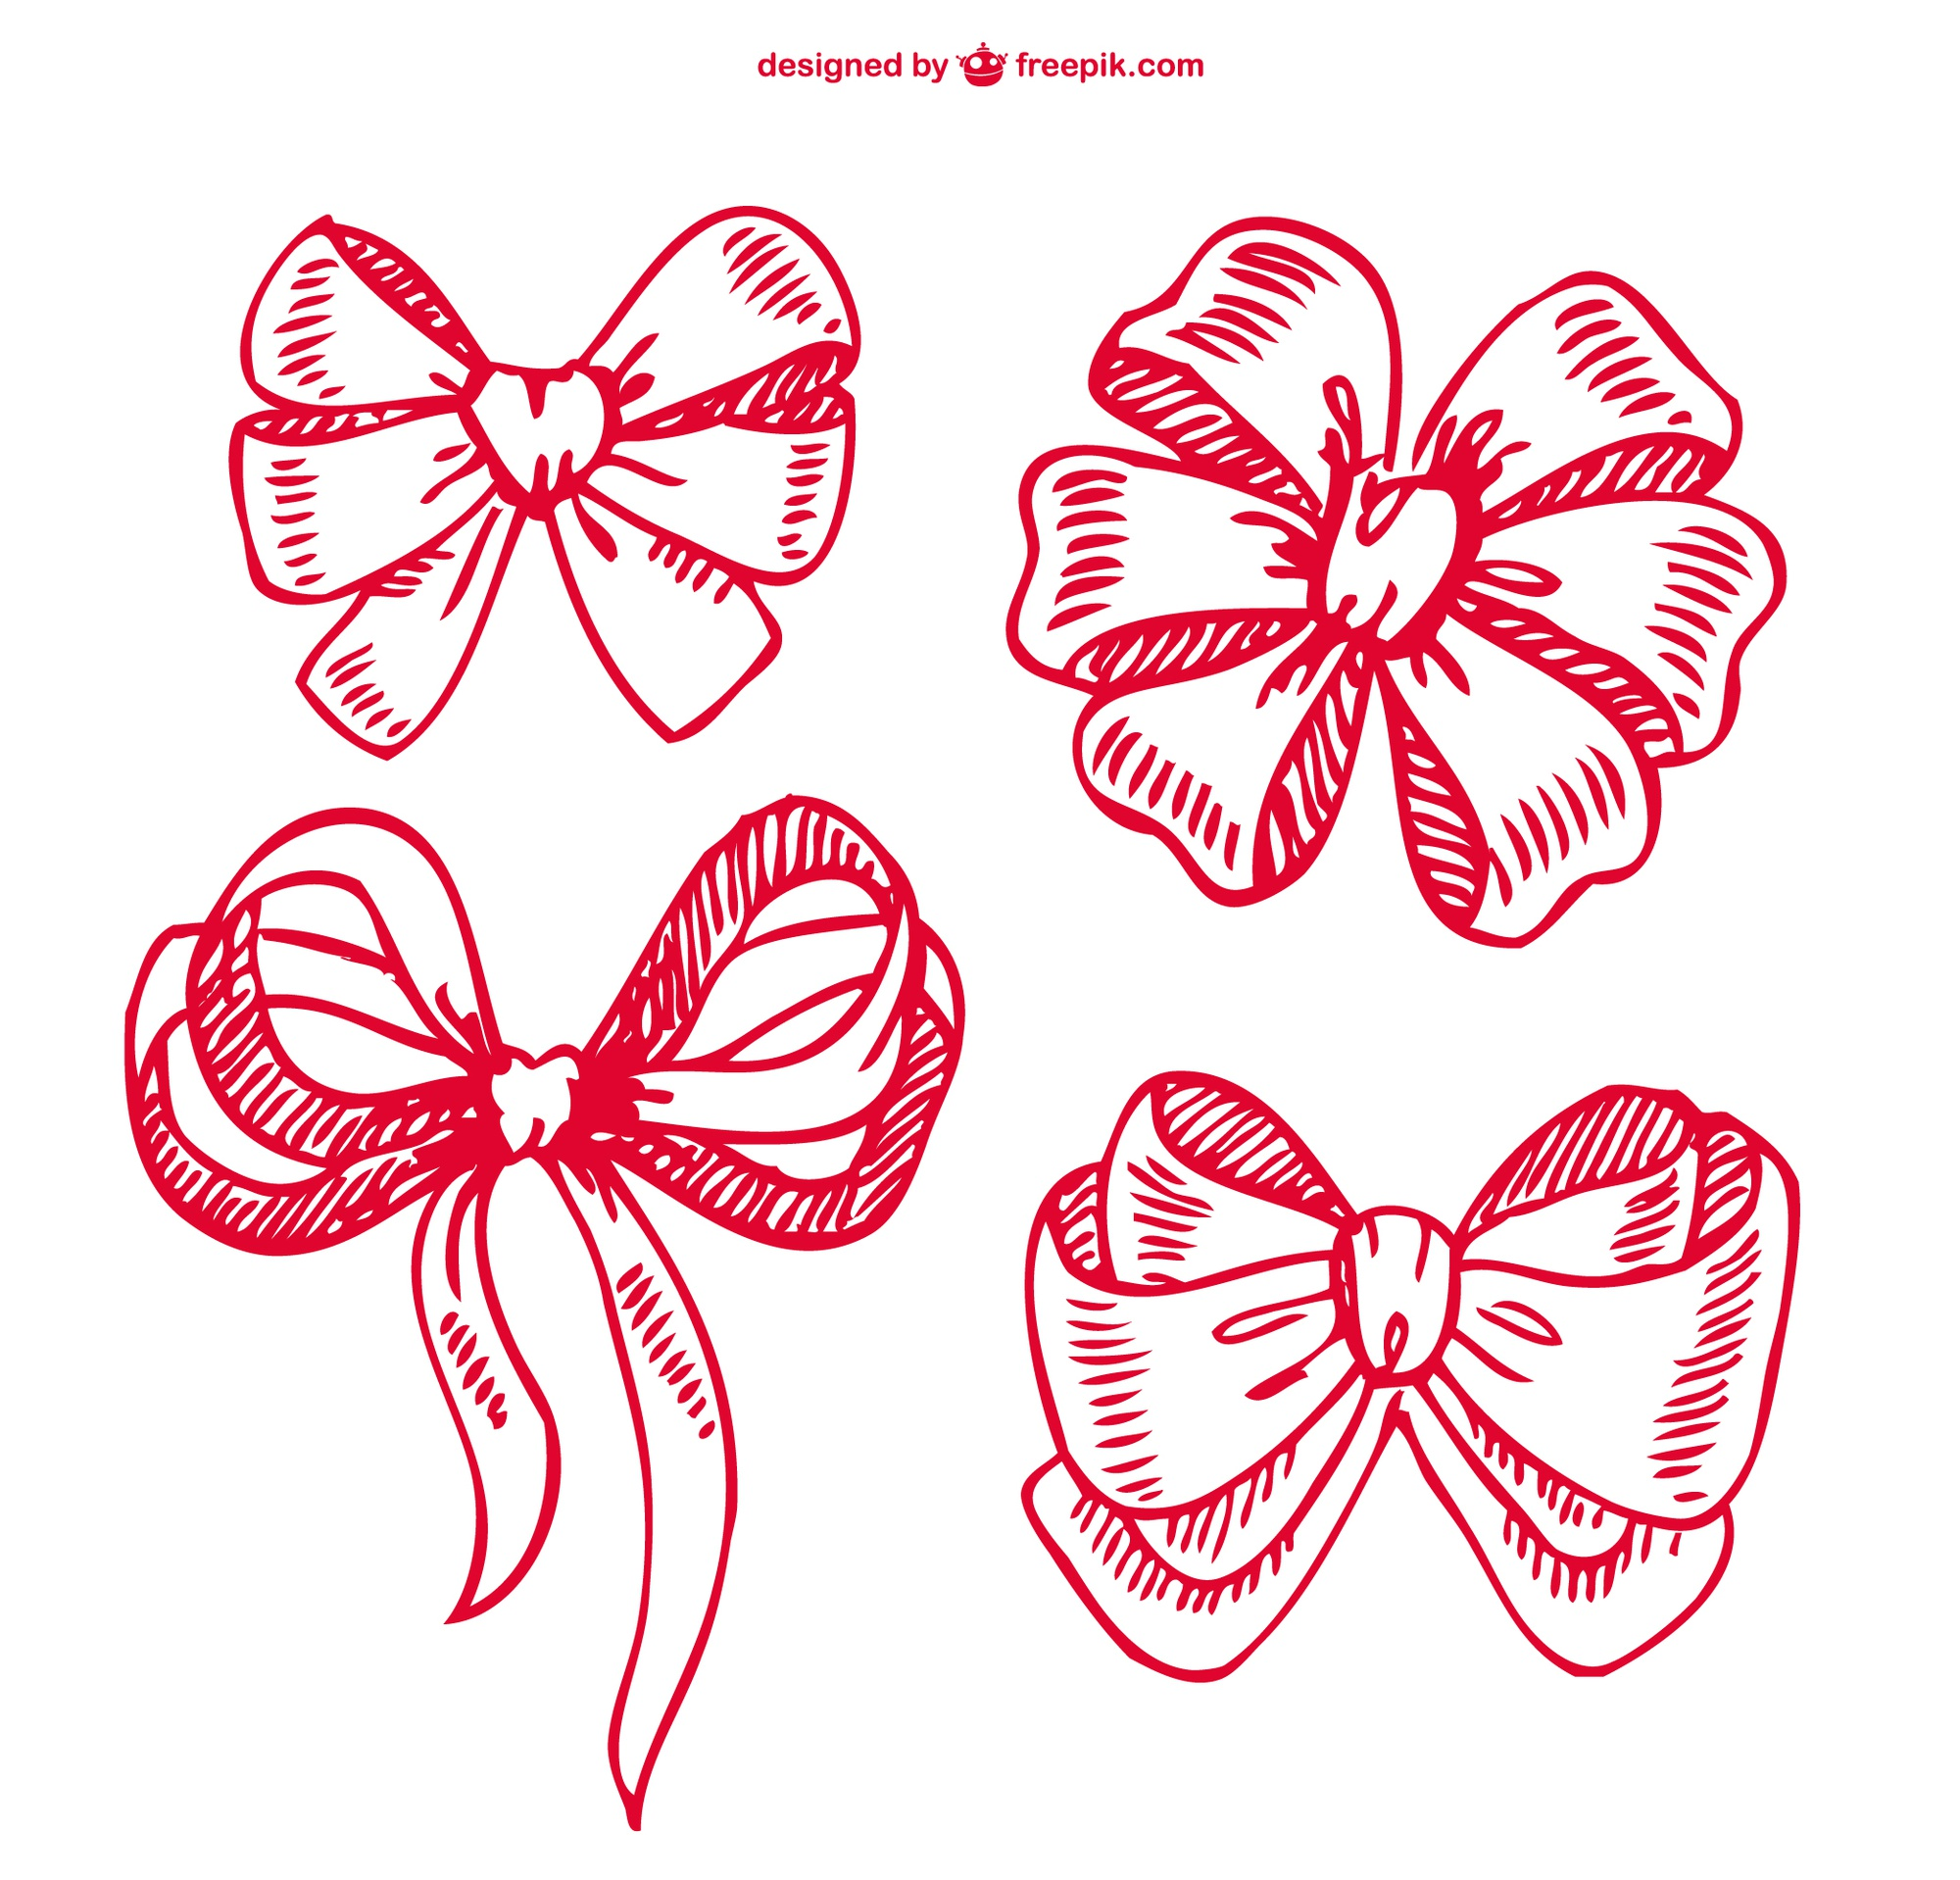 Ribbon doodles collection